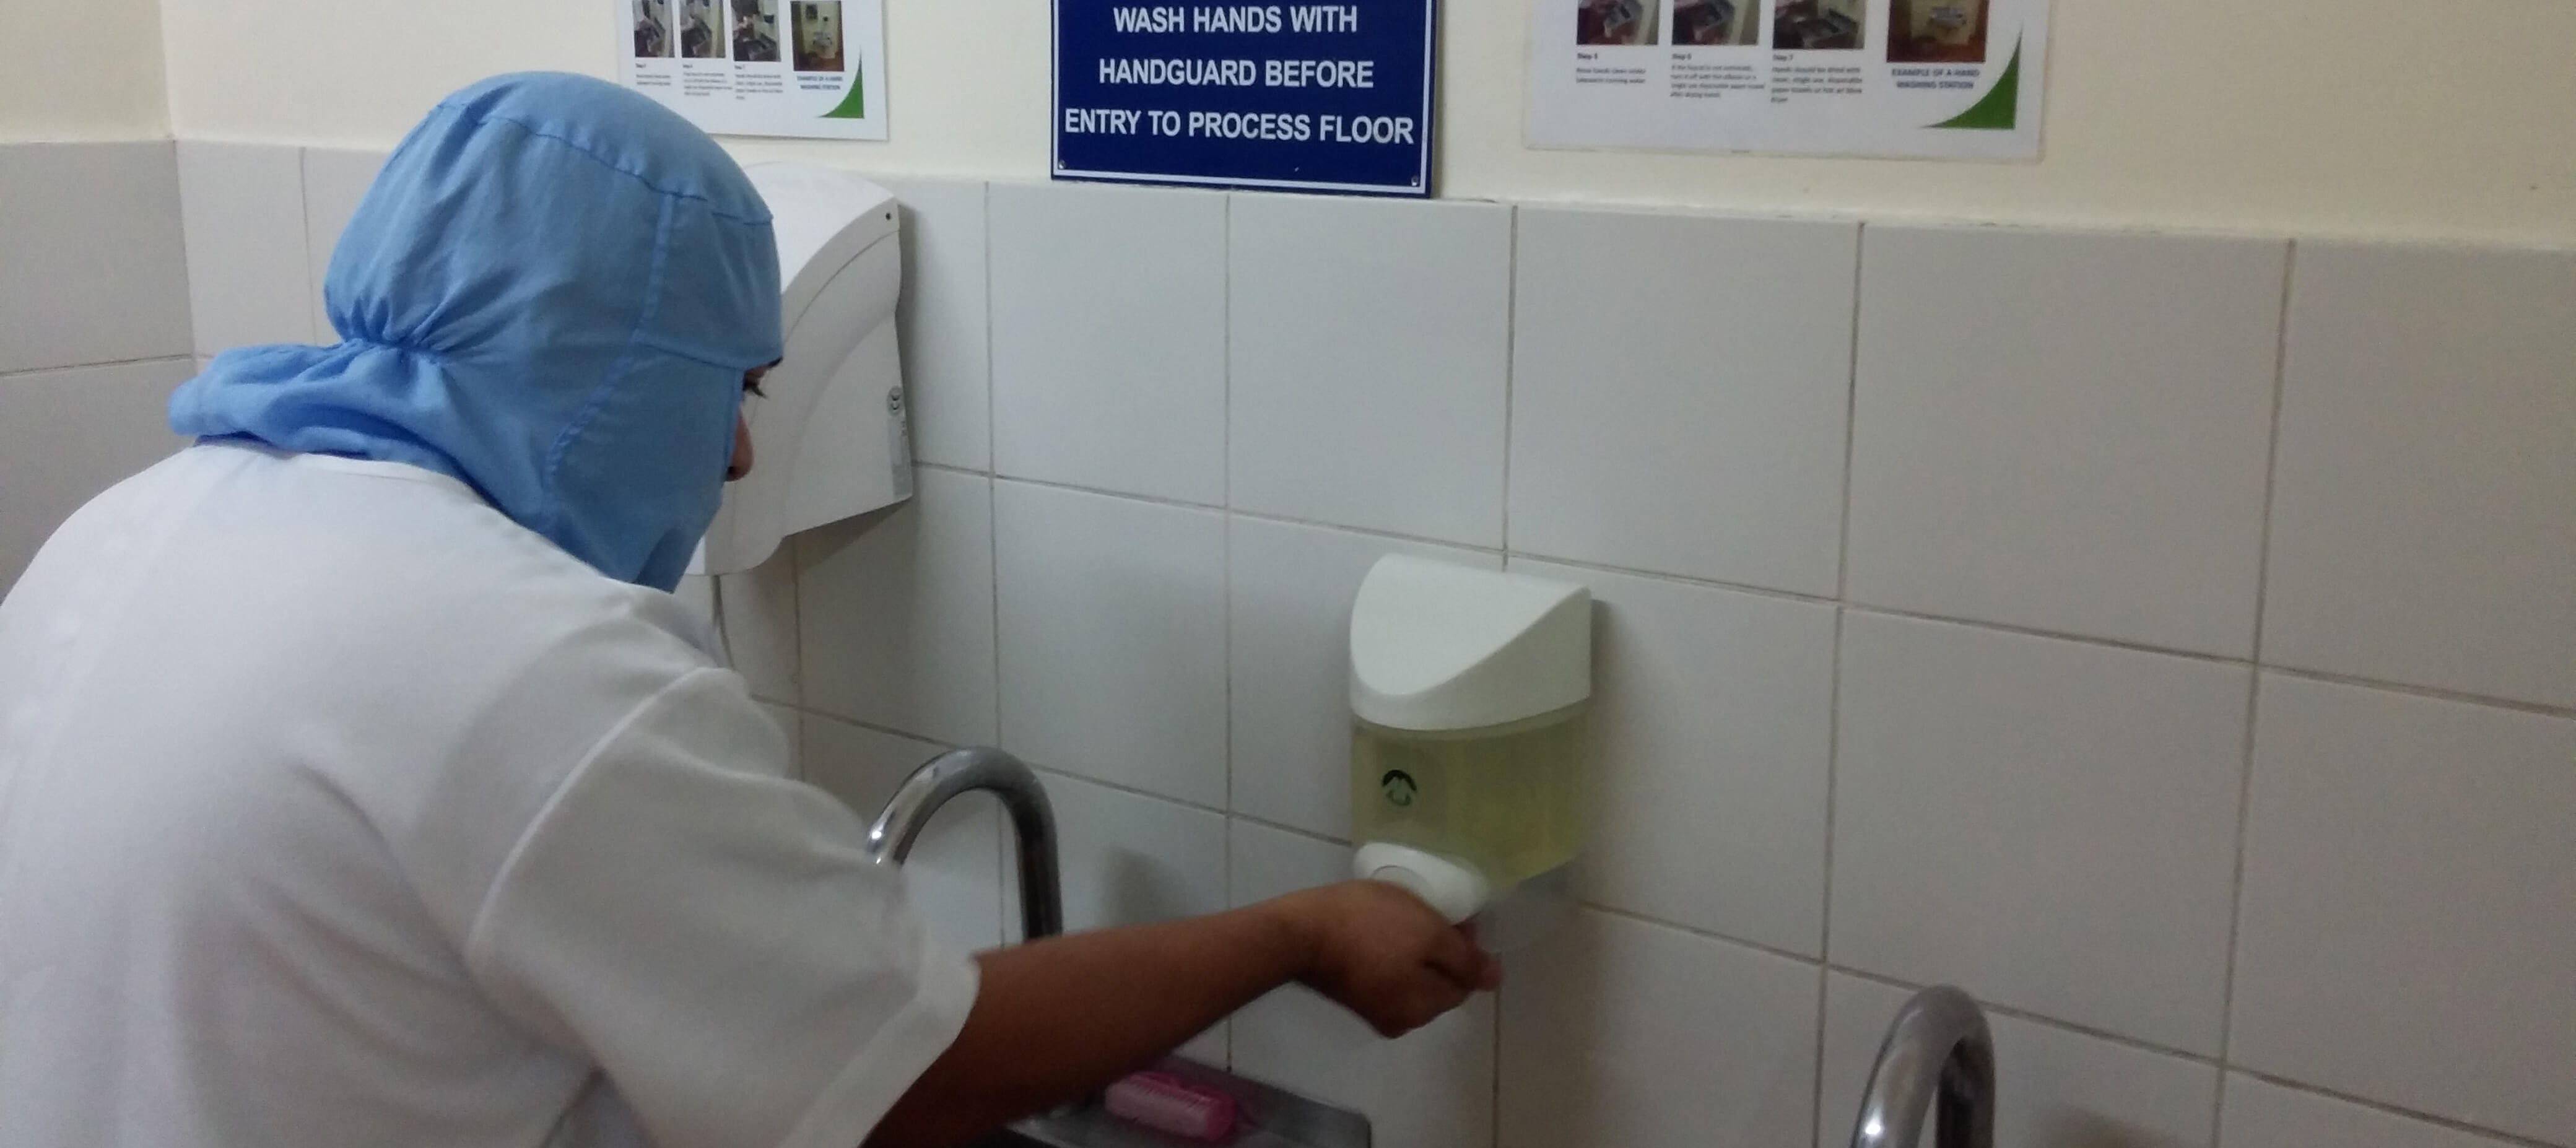 Hand Care Personal Hygeine Nch Asia